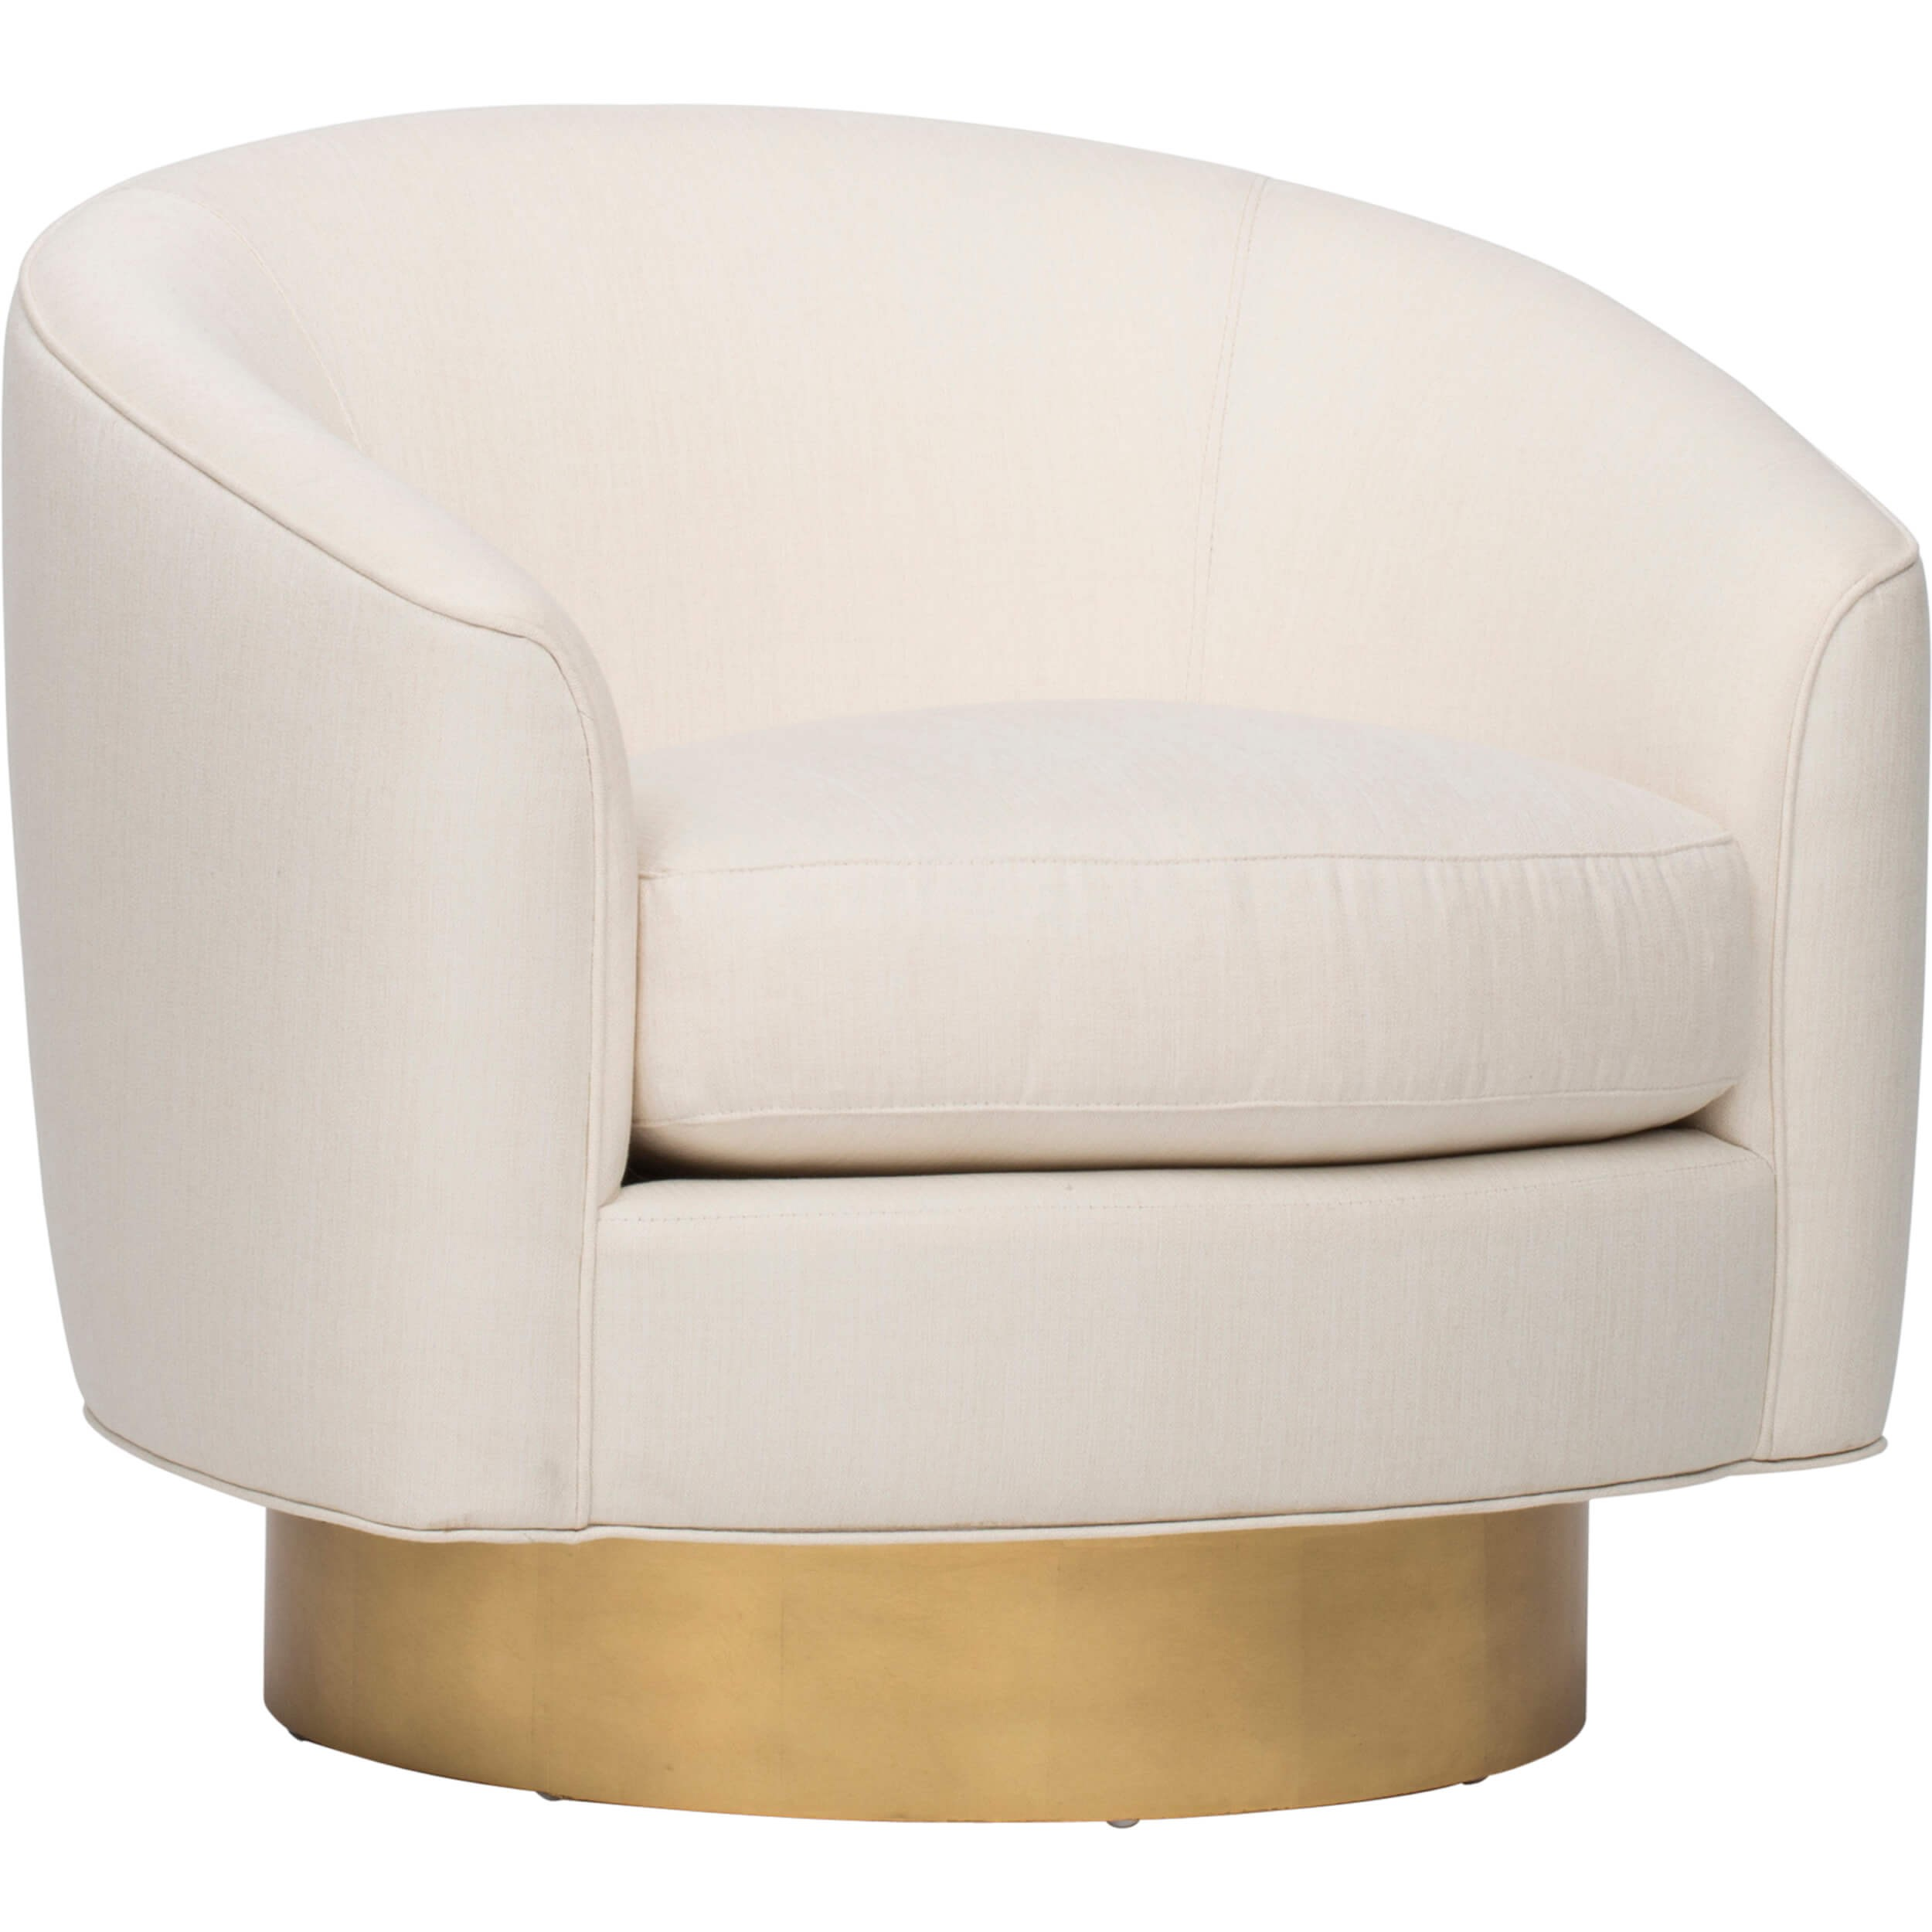 Camino Swivel Chair Ivory by High Fashion Home